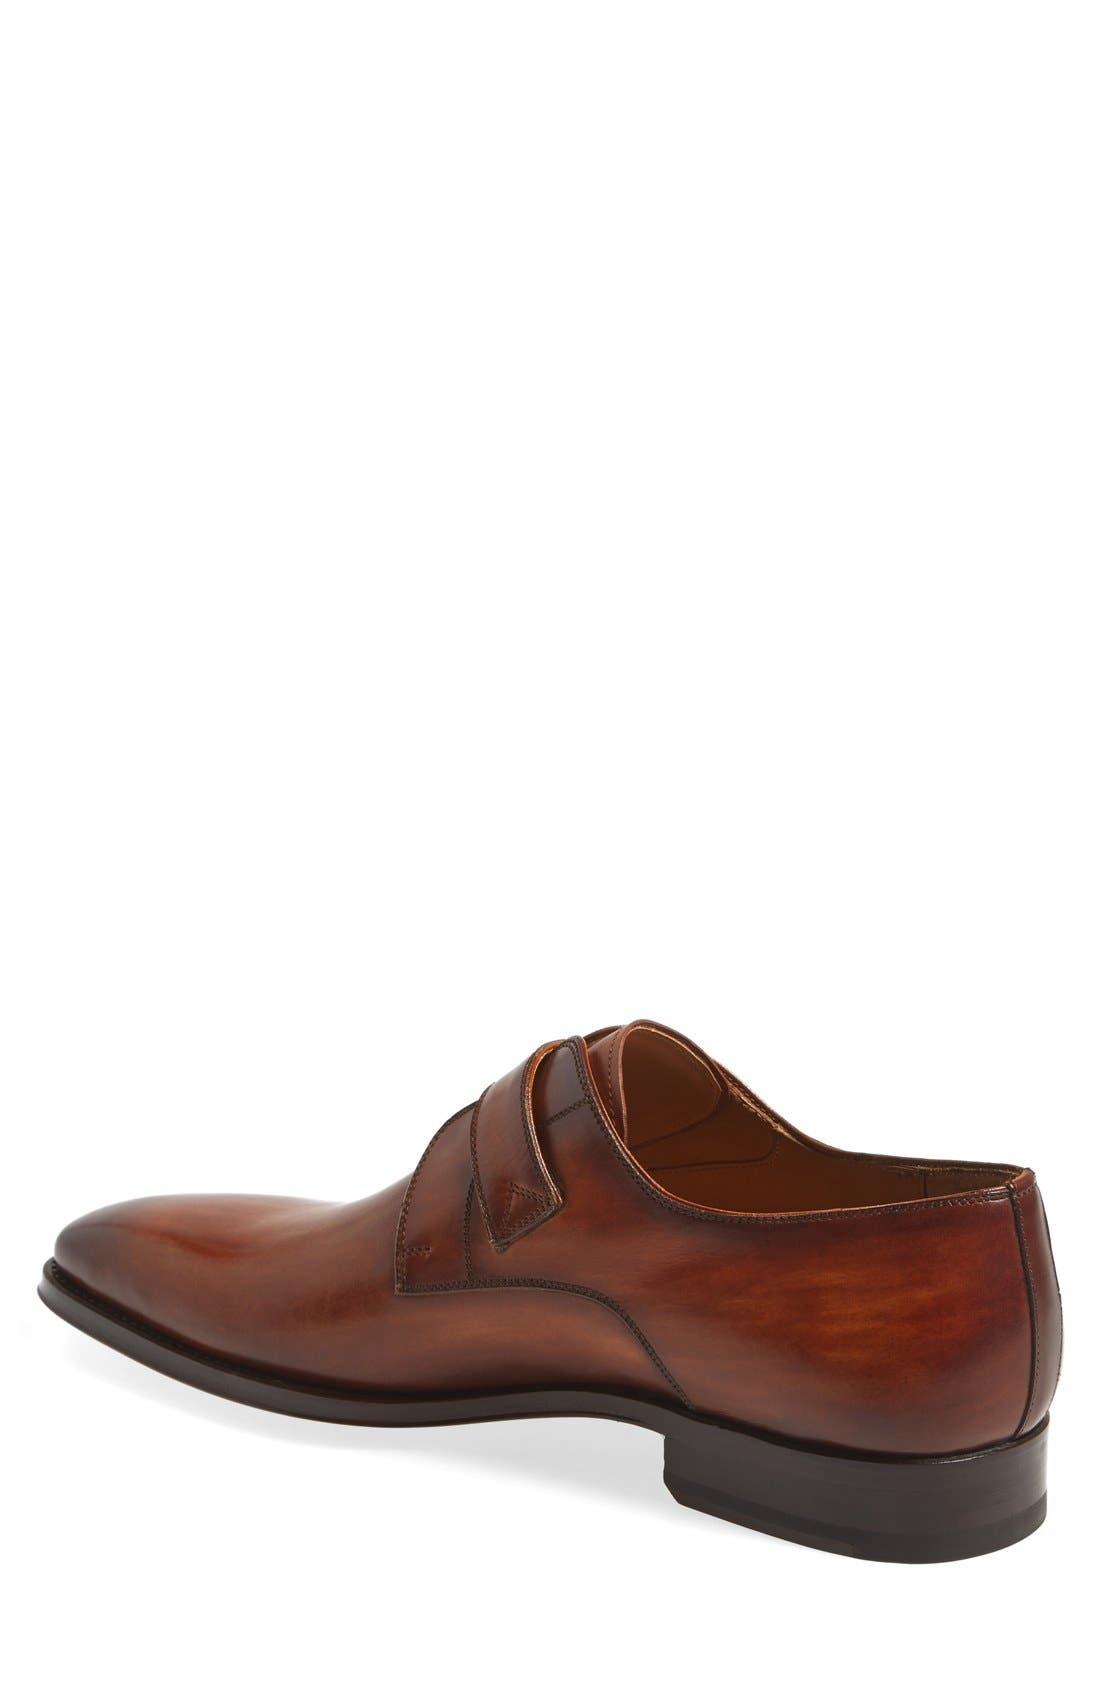 Marco Monk Strap Loafer,                             Alternate thumbnail 2, color,                             Cuero Brown Leather